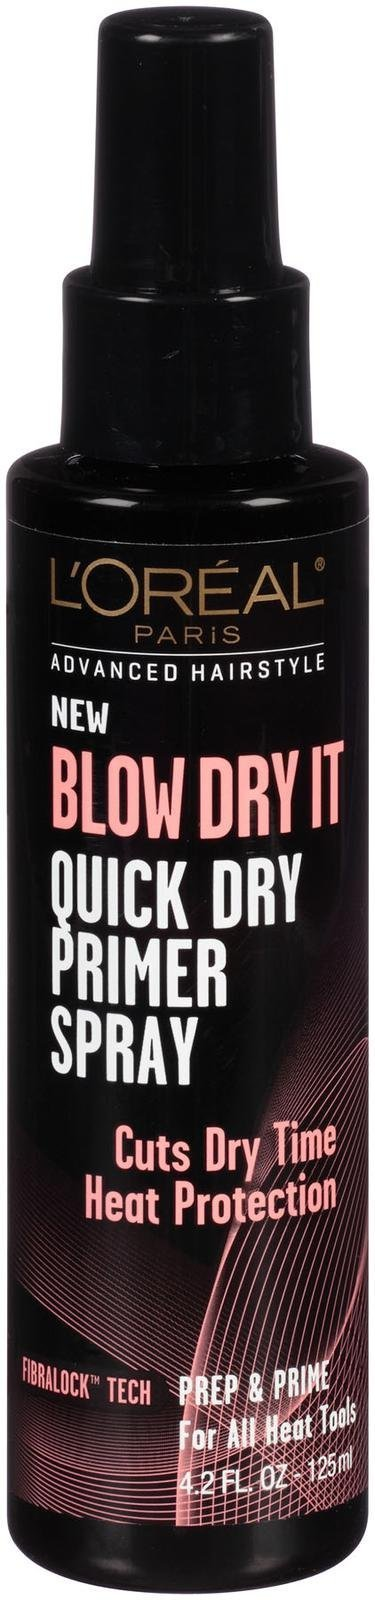 L'Oreal Paris Advanced Hairstyle BLOW DRY IT Quick Dry Primer Spray 4.2 fl. oz.